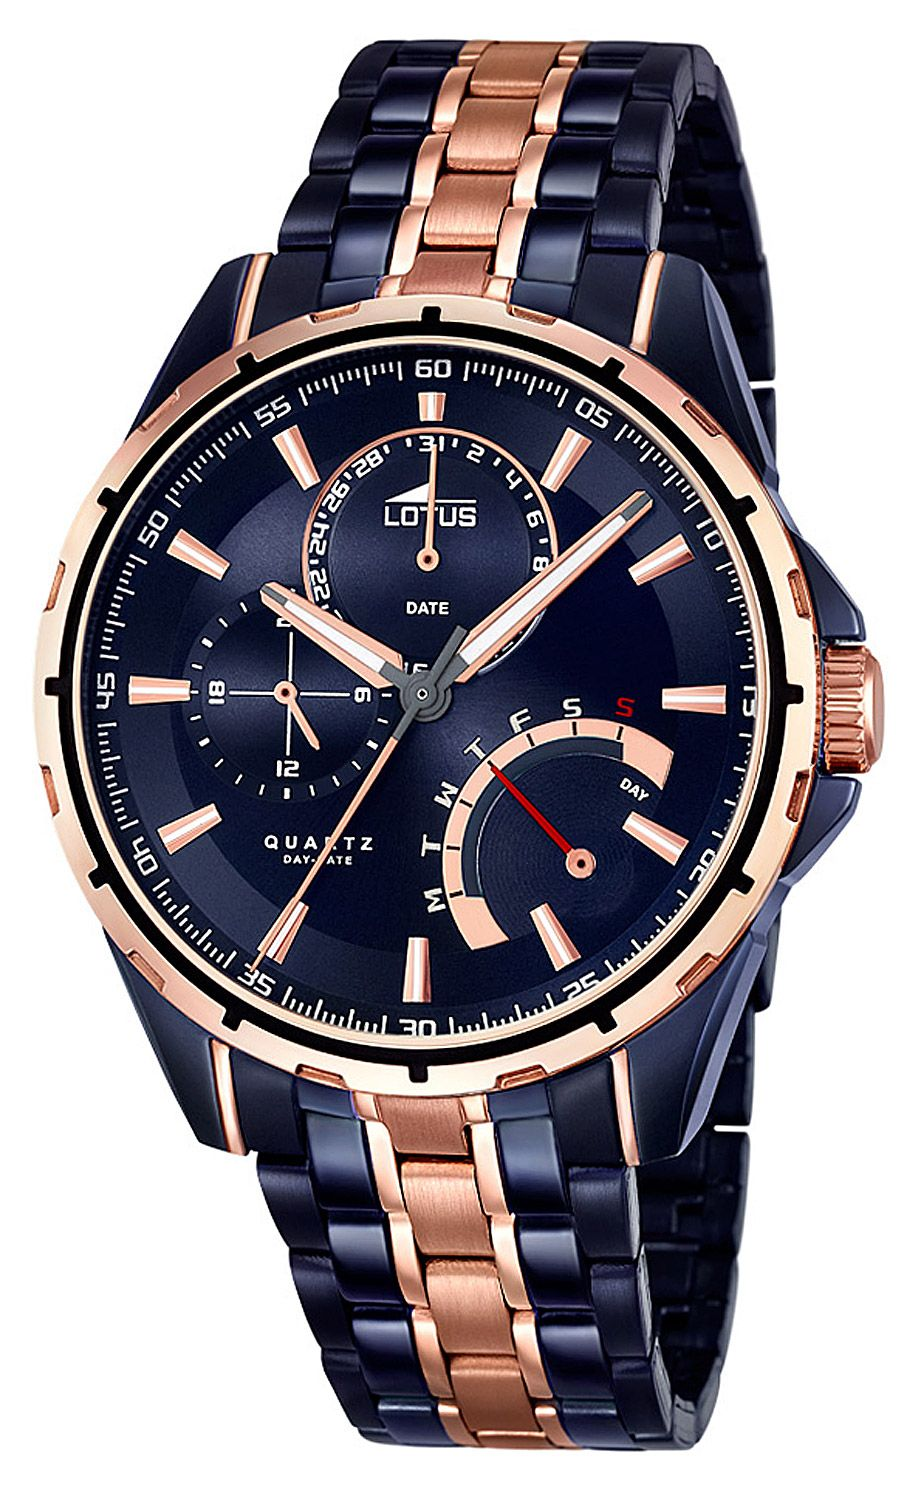 2bda8da8af0d Buy LOTUS 18205 1 Multifunction Mens Watch now from uhrcenter Watch Shop.  ✓Official Lotus Stockist!